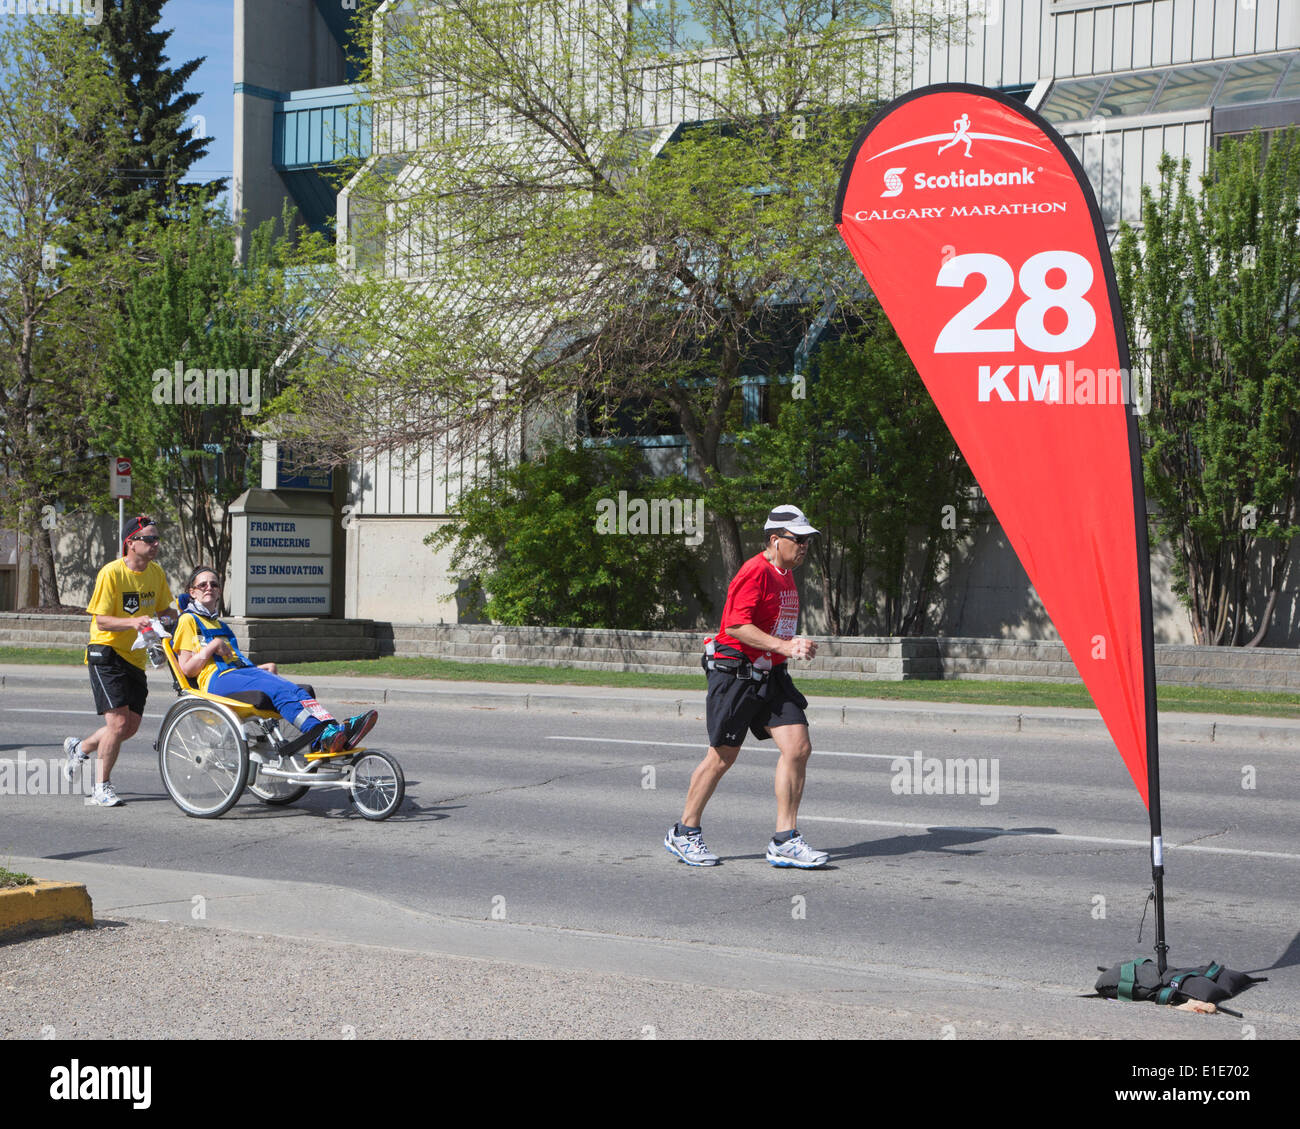 Calgary, Alberta, Canada. 01st June, 2014. Runners and wheelchair participant racing in the 50th Scotiabank Calgary Marathon on Sunday, June 1, 2014. Canada's longest running marathon attracted more than 15,000 participants and raised over one million dollars for charity. Calgary, Alberta, Canada. Credit:  Rosanne Tackaberry/Alamy Live News - Stock Image